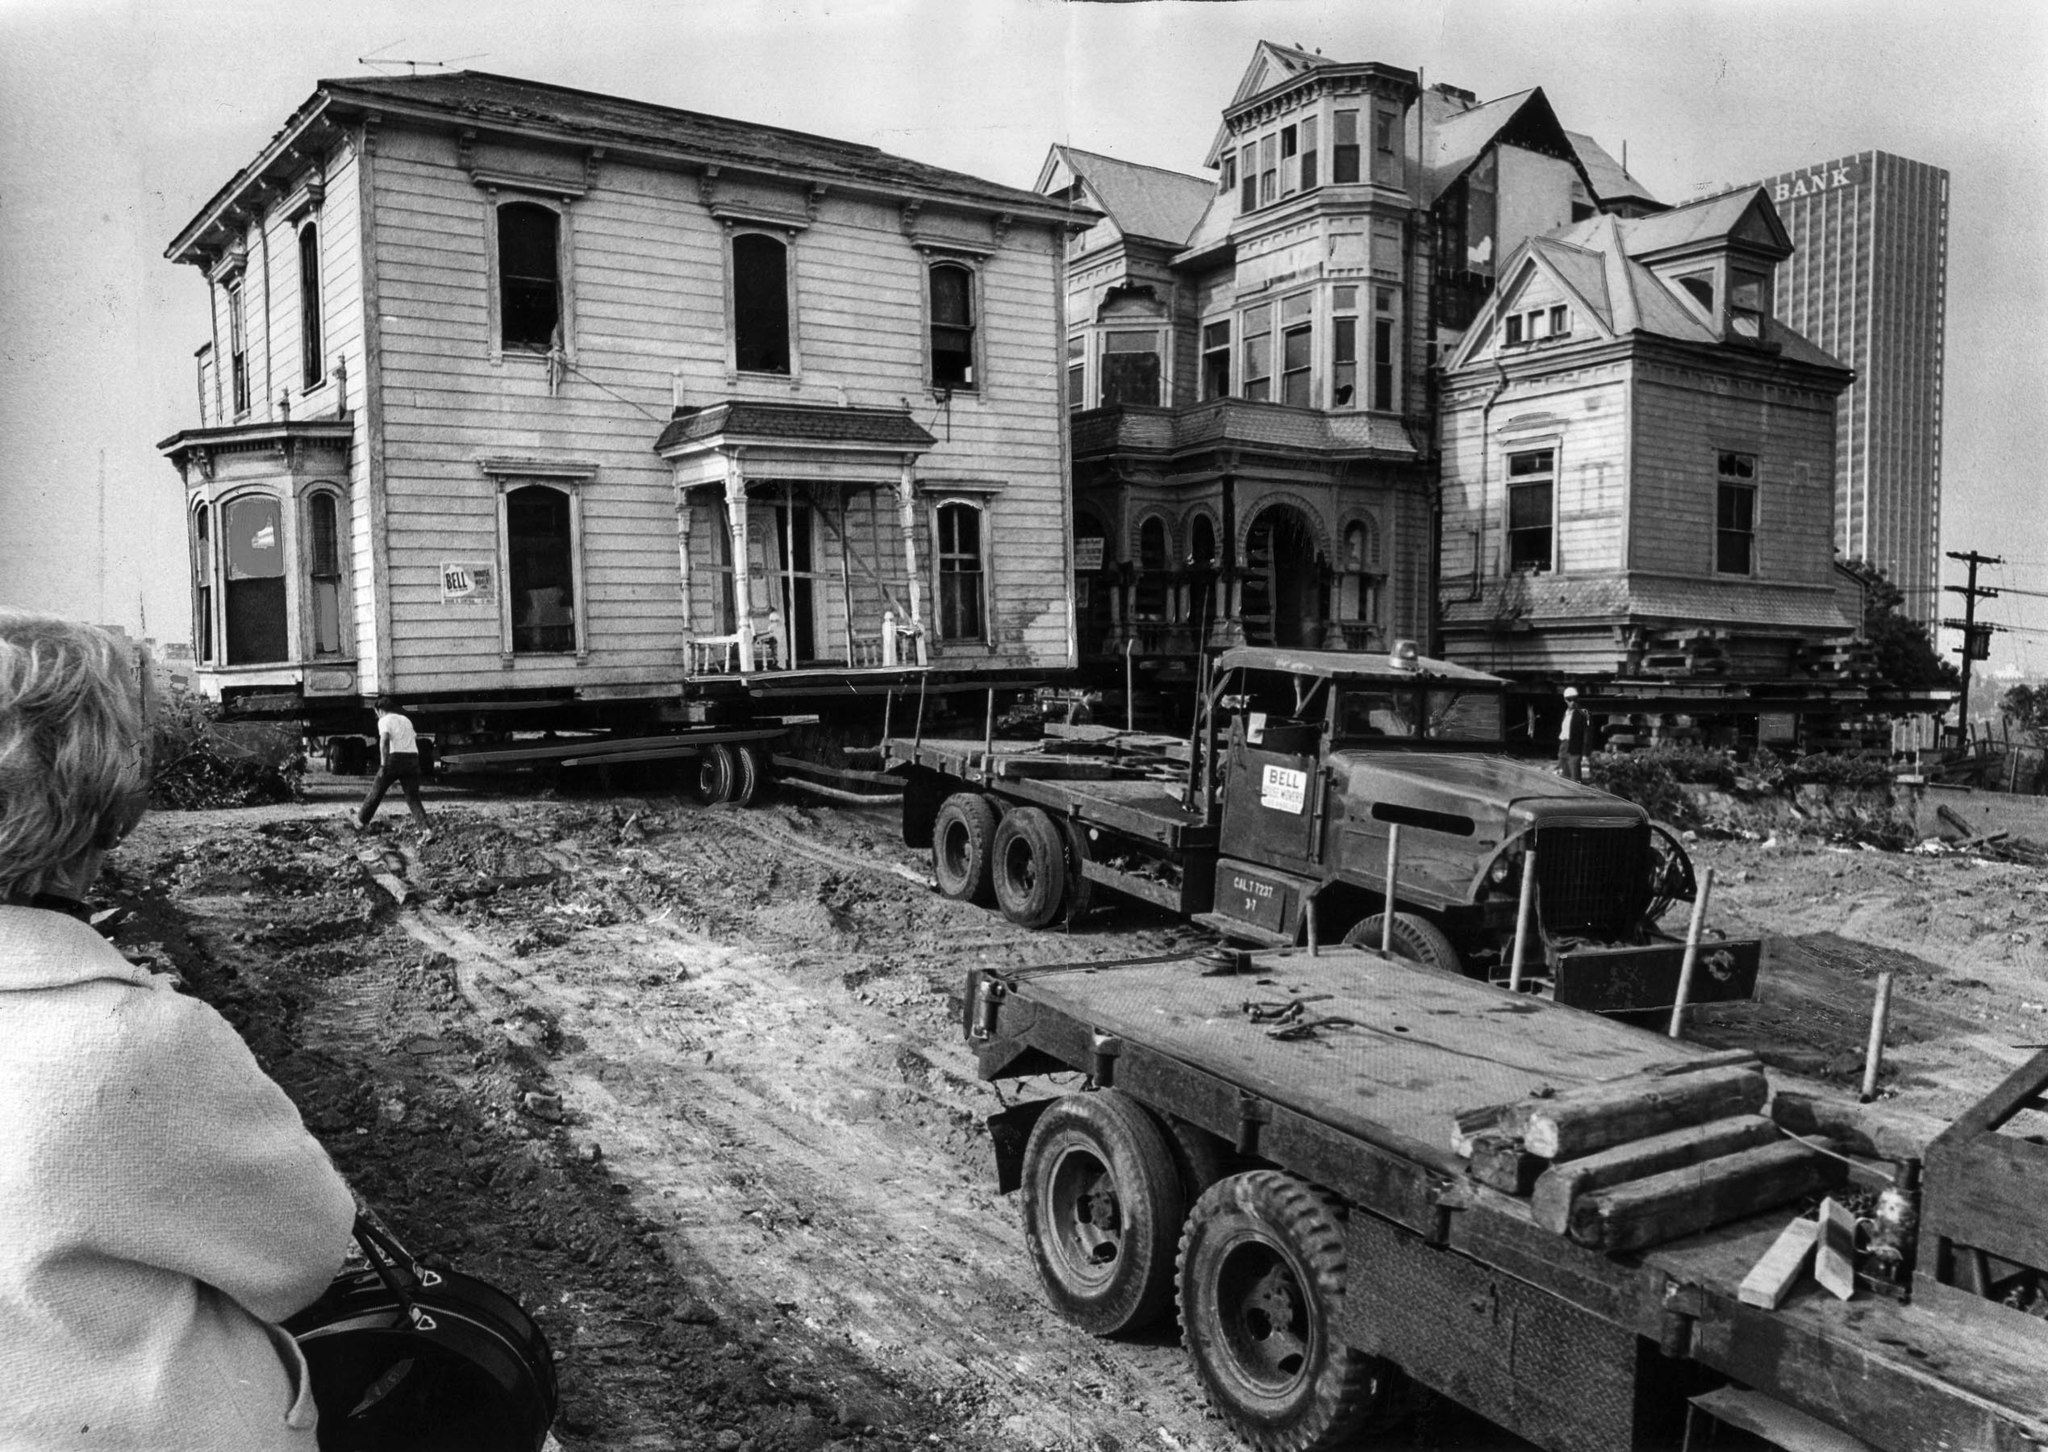 Nov. 7, 1968: Workmen begin moving the Salt Box, left, past the Castle to a temporary location. The